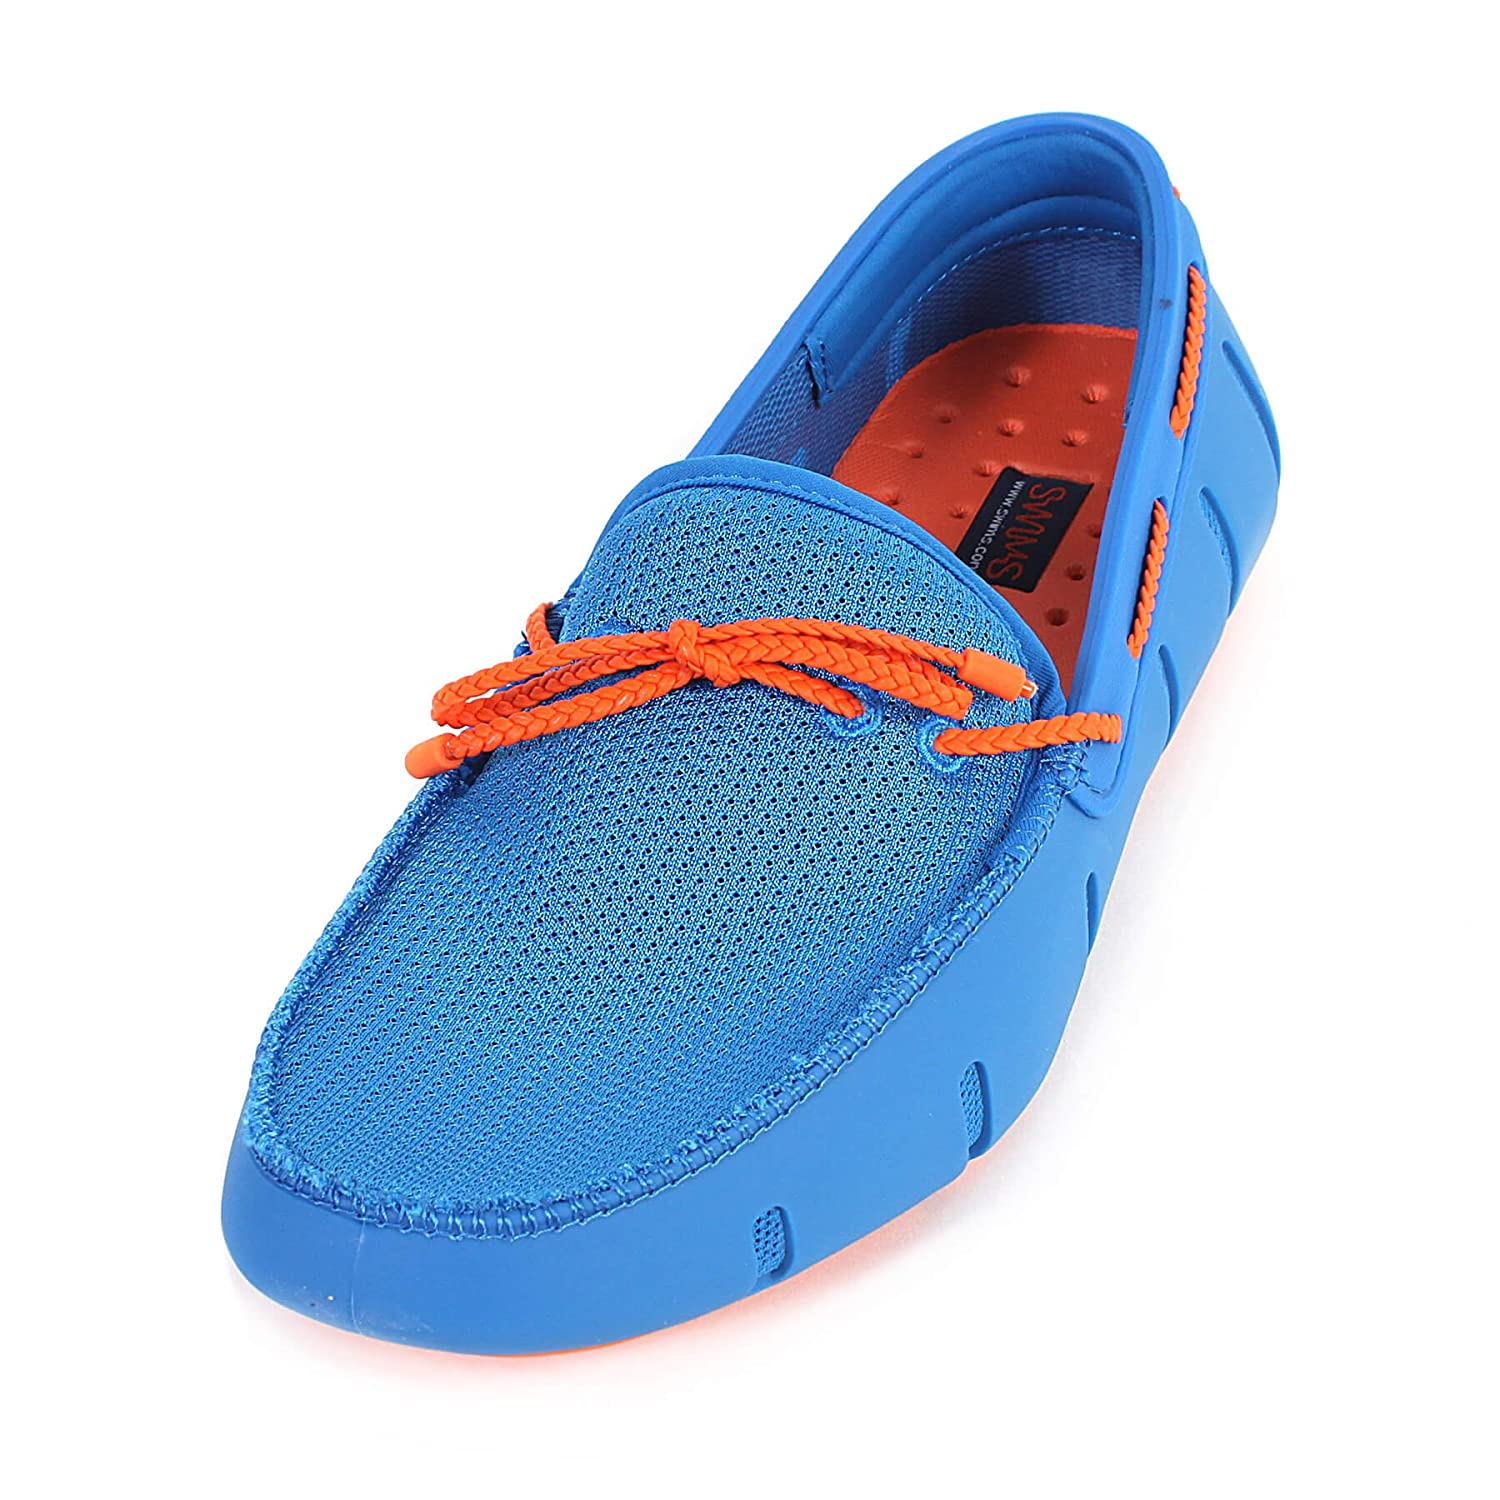 23ea0624d597 Swims Men s Braided Lace Loafer Boat Shoes  Amazon.co.uk  Shoes   Bags